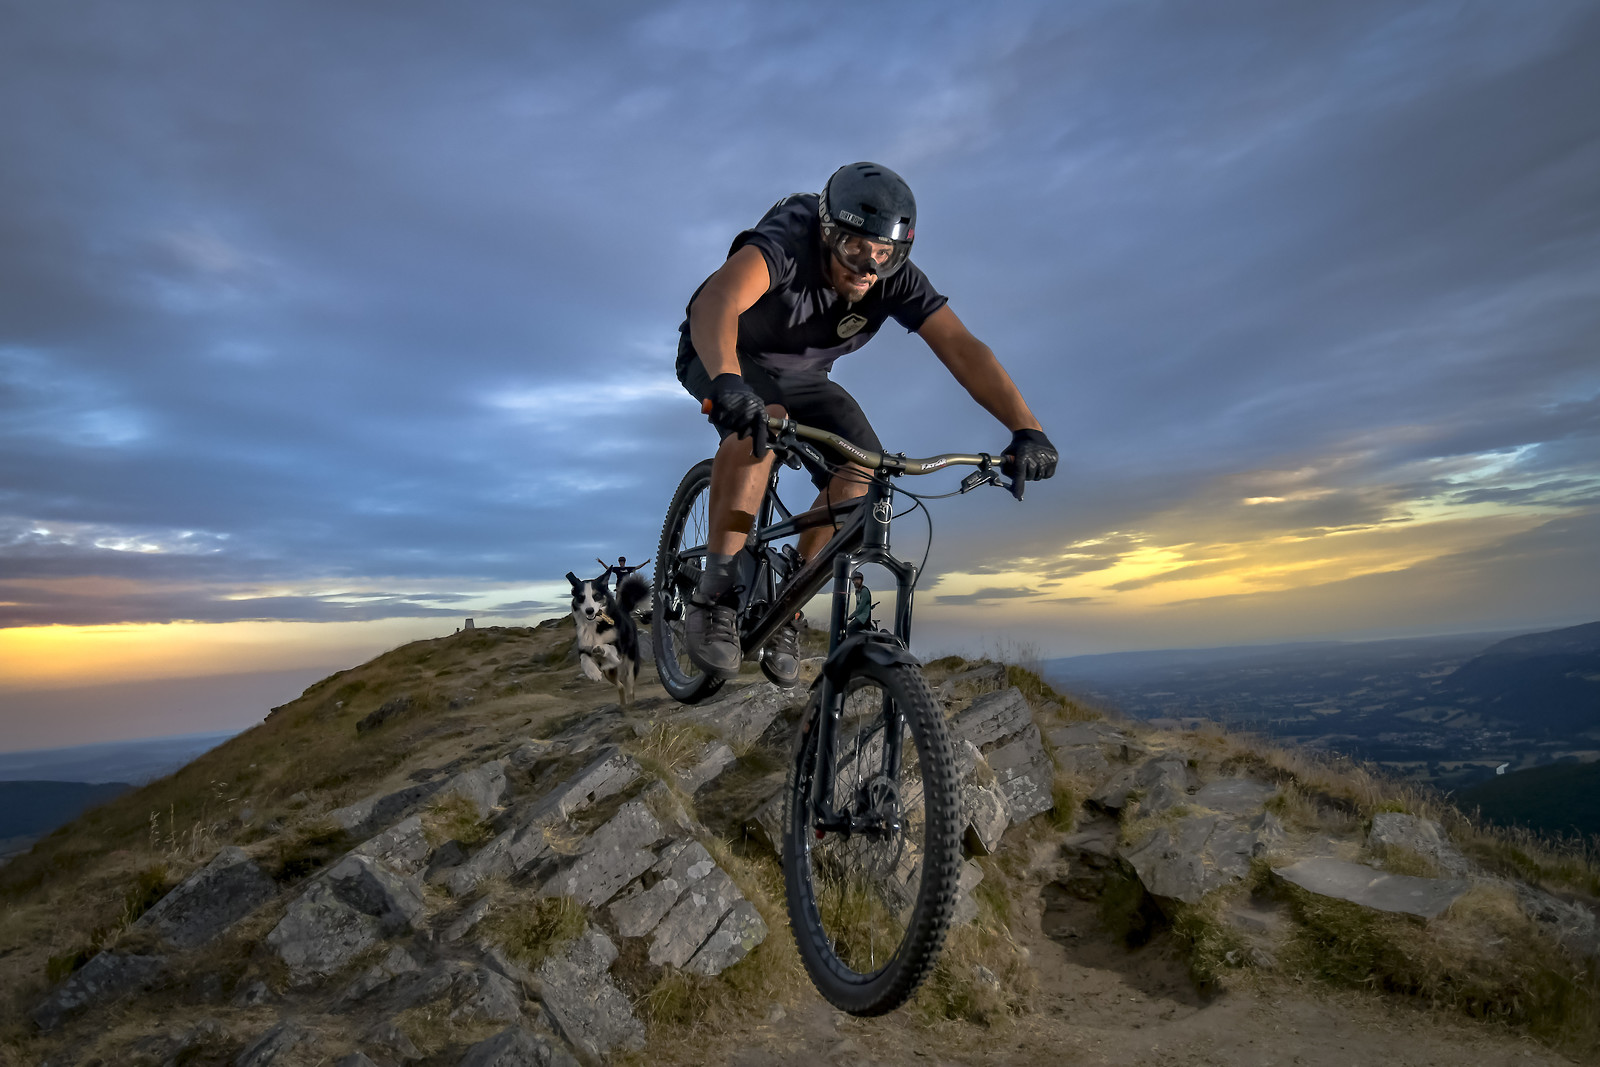 ROB2203 - robbarkerimages2017 - Mountain Biking Pictures - Vital MTB